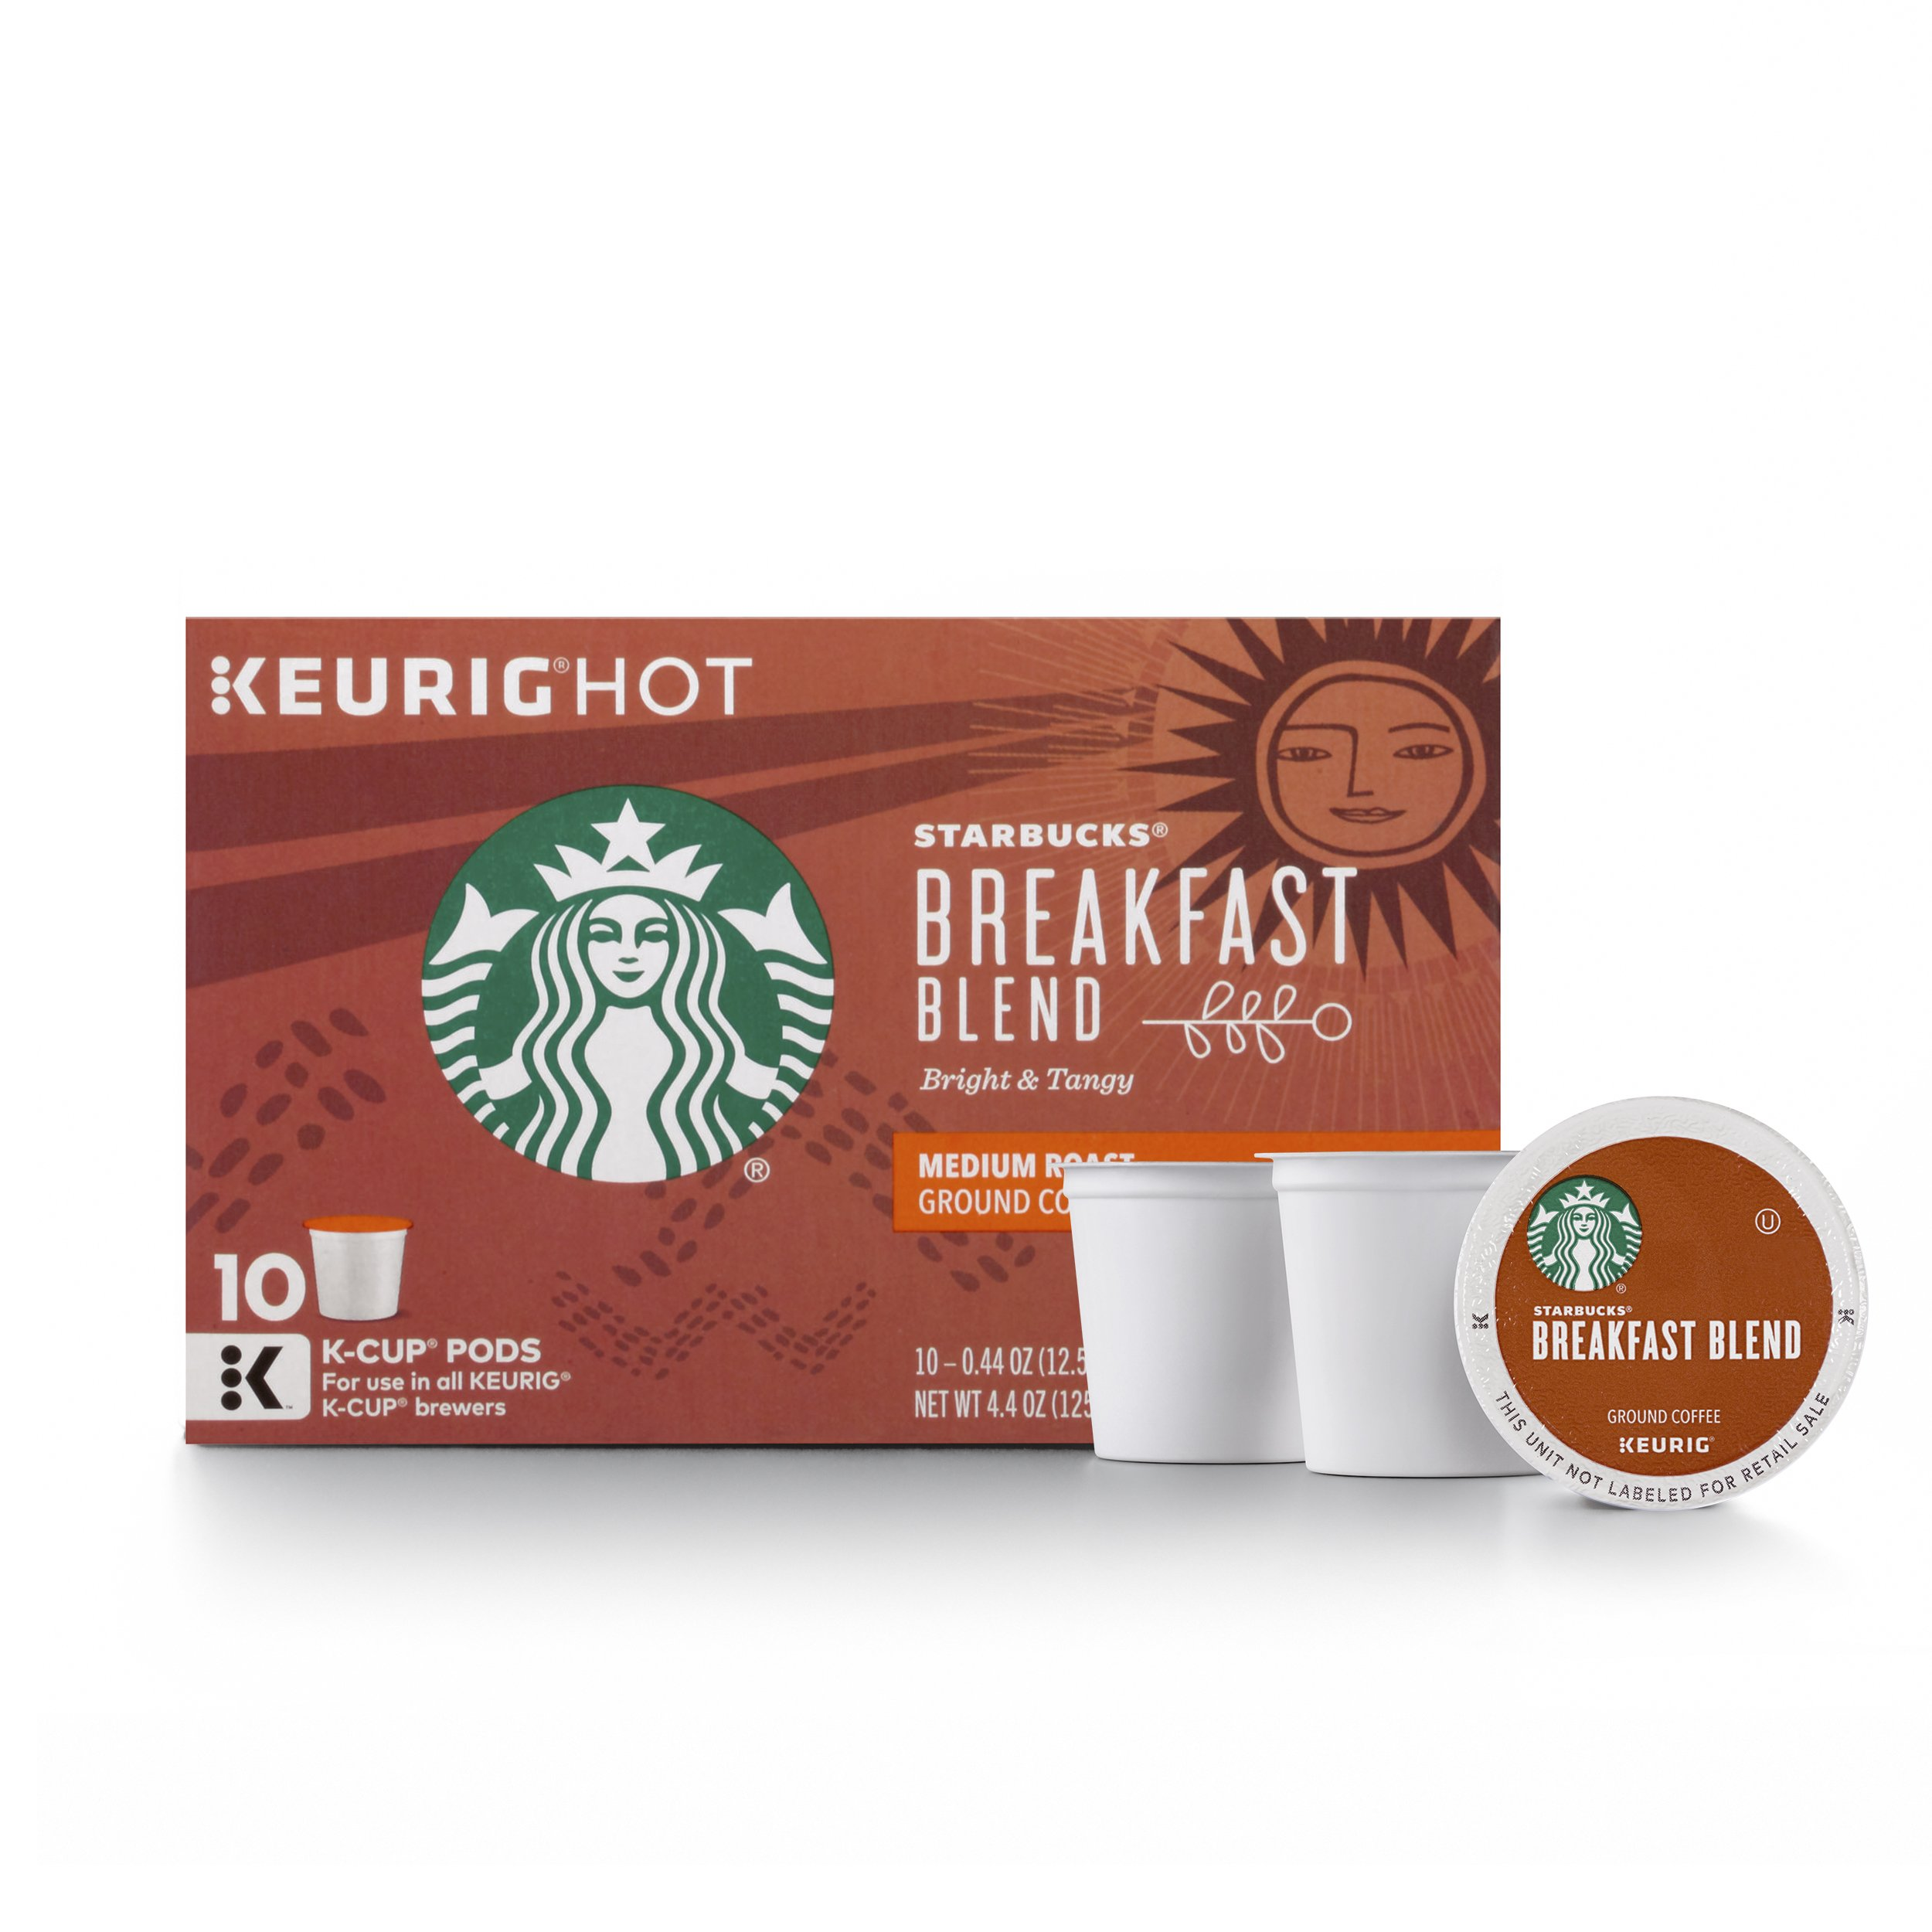 Starbucks Breakfast Blend Medium Roast Single Cup Coffee for Keurig Brewers, 6 Boxes of 10 (60 Total K-Cup pods) by Starbucks (Image #1)